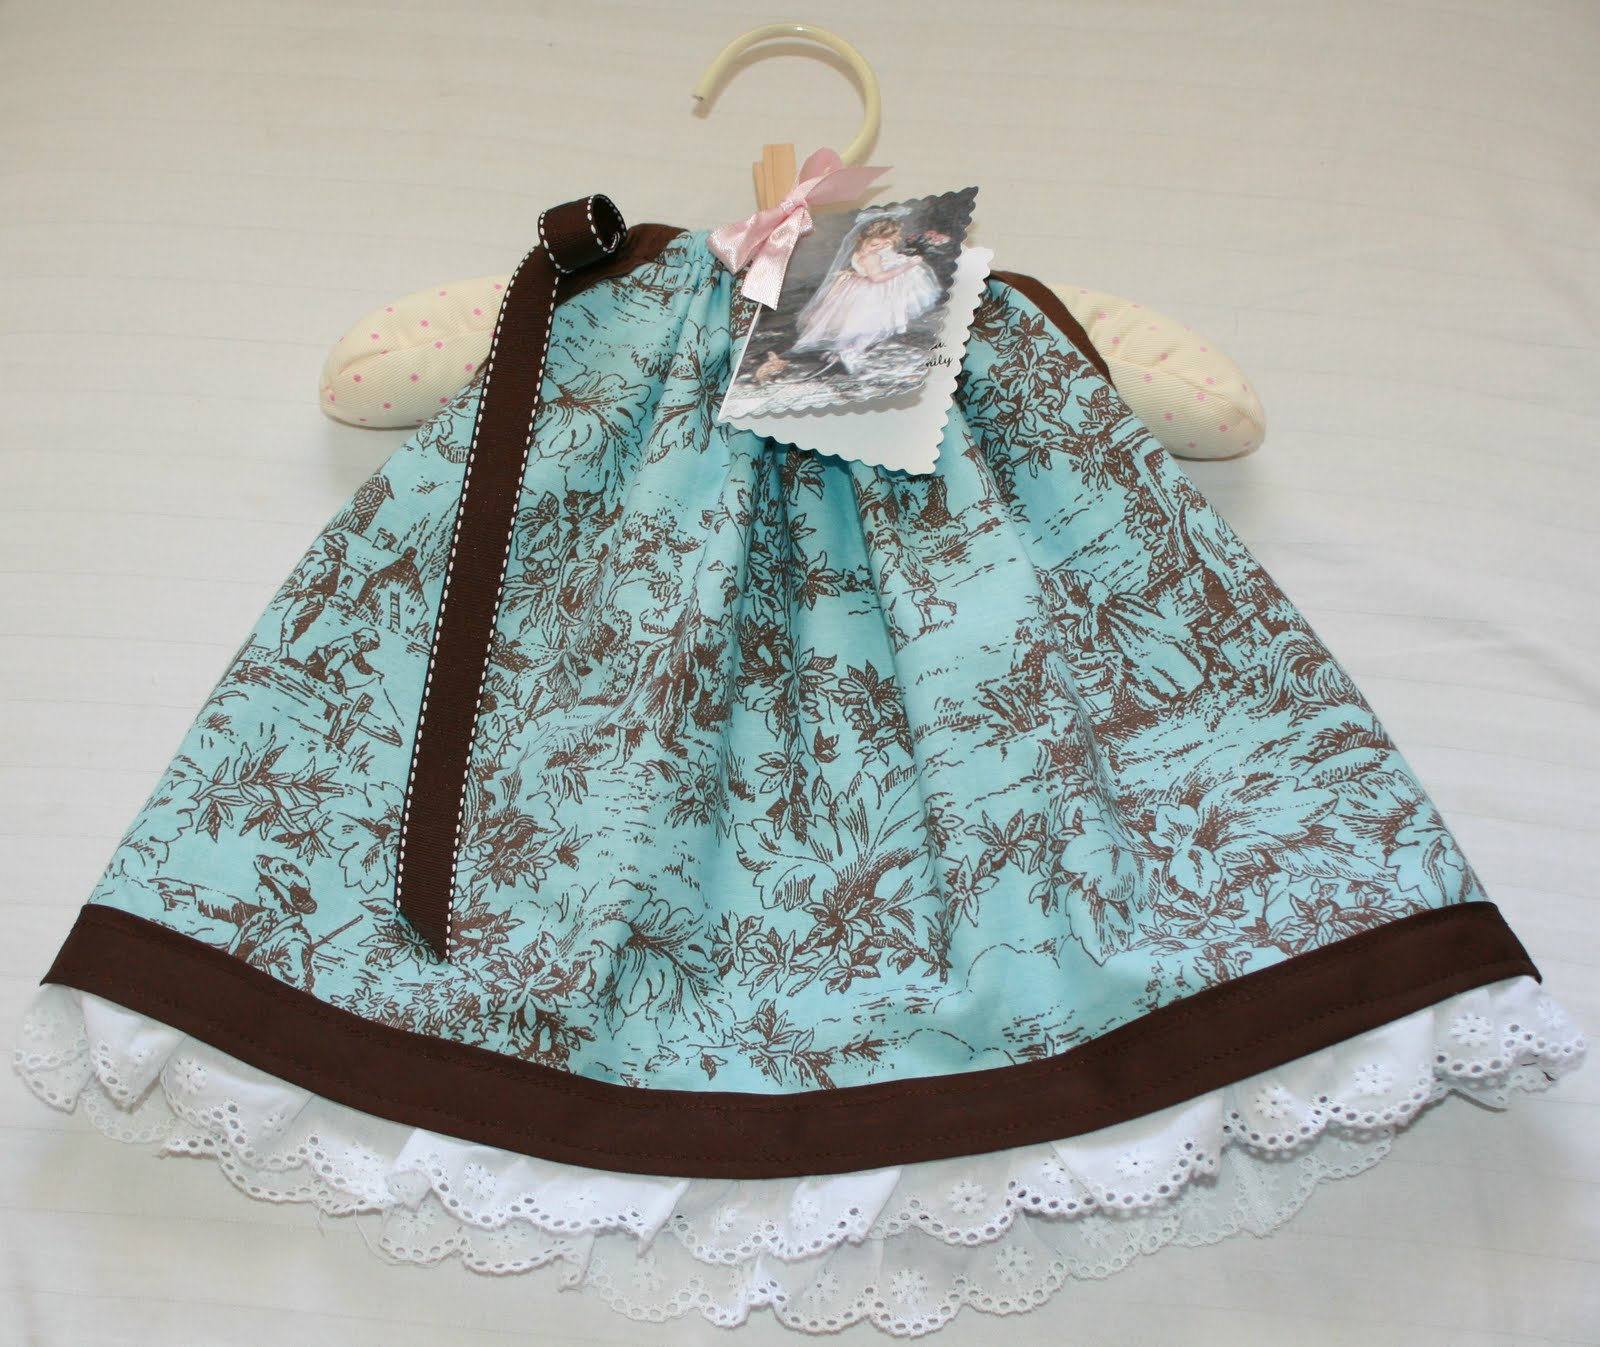 Sweetie Pie Baby Pillowcase Style Dress With Diaper Cover